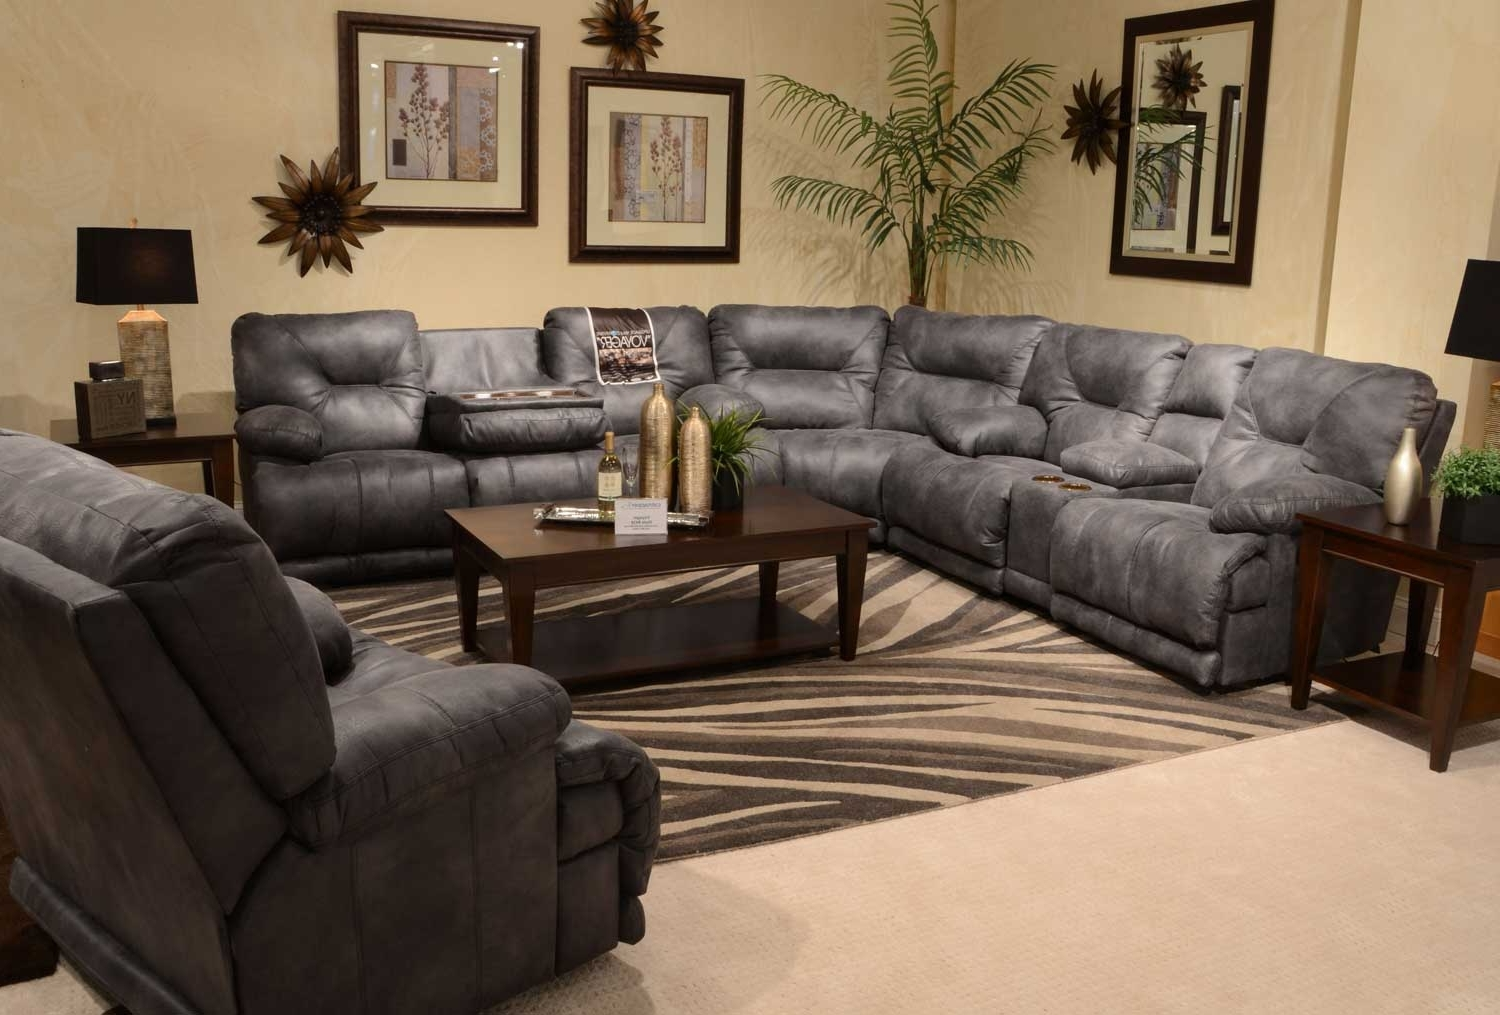 Catnapper Voyager Sectional With Lay Flat 3 Recliner Sofa, Console Intended For Favorite Sectional Sofas With Consoles (View 15 of 15)